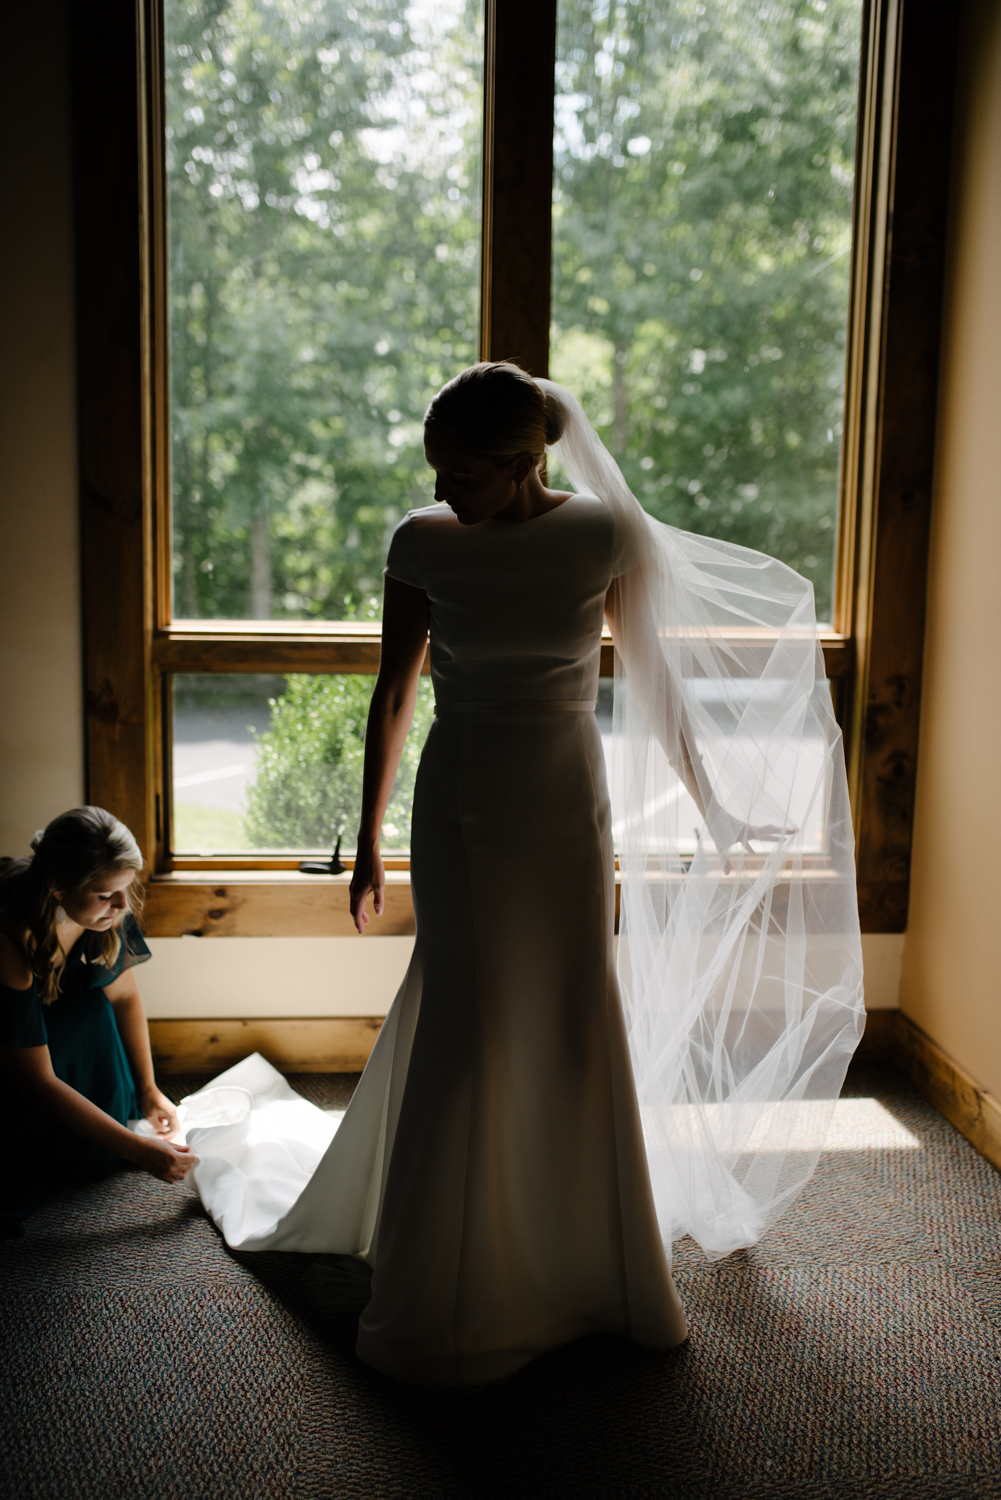 Poetry-&-motion-wedding-photography-elk-river-club-emily-&-chad6.jpg